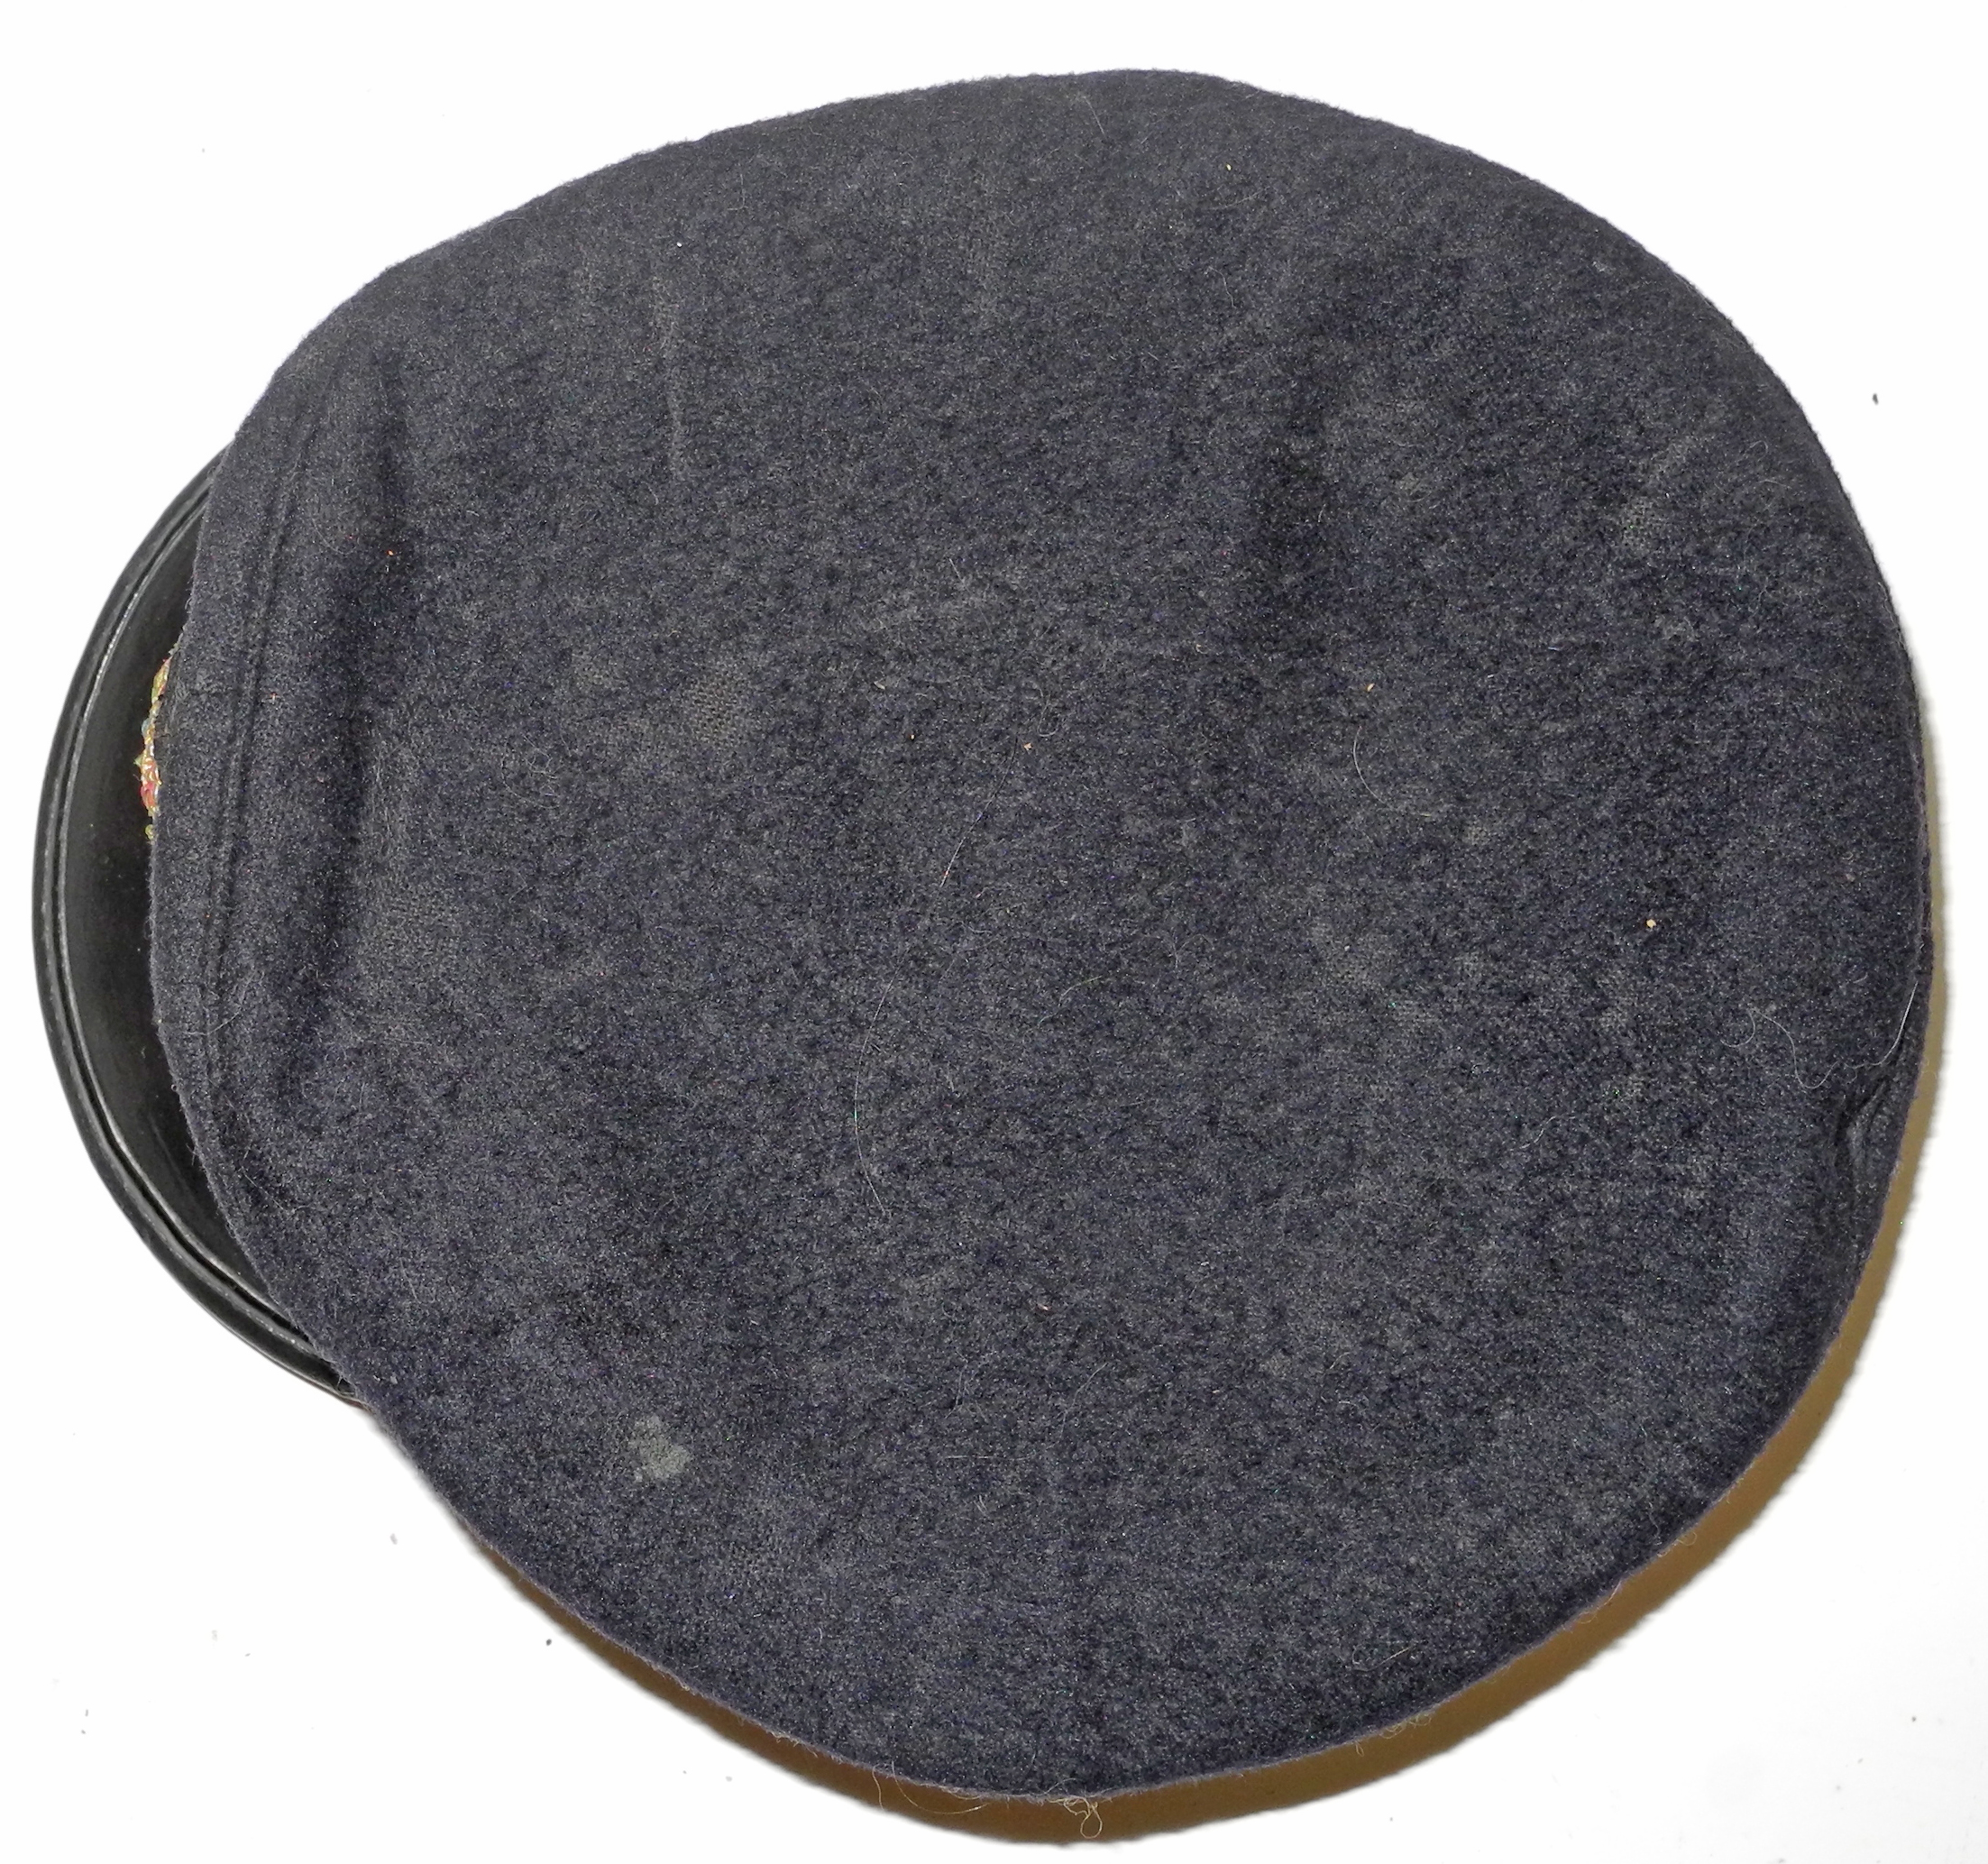 RNAS officer's cap with reproduction badgeCN8737